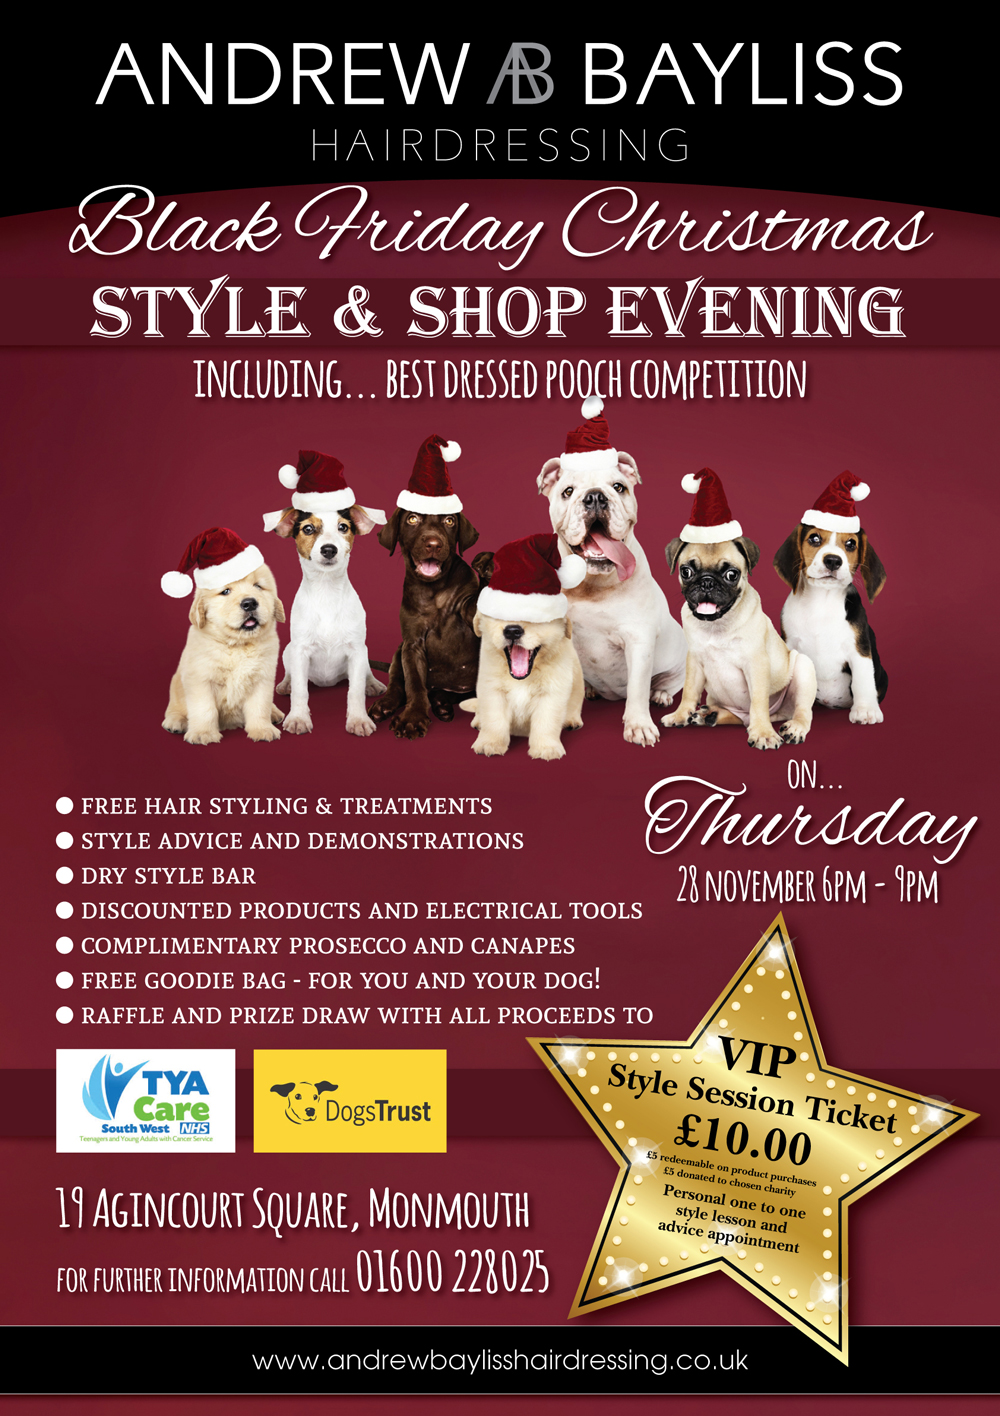 Style & Shop Evening